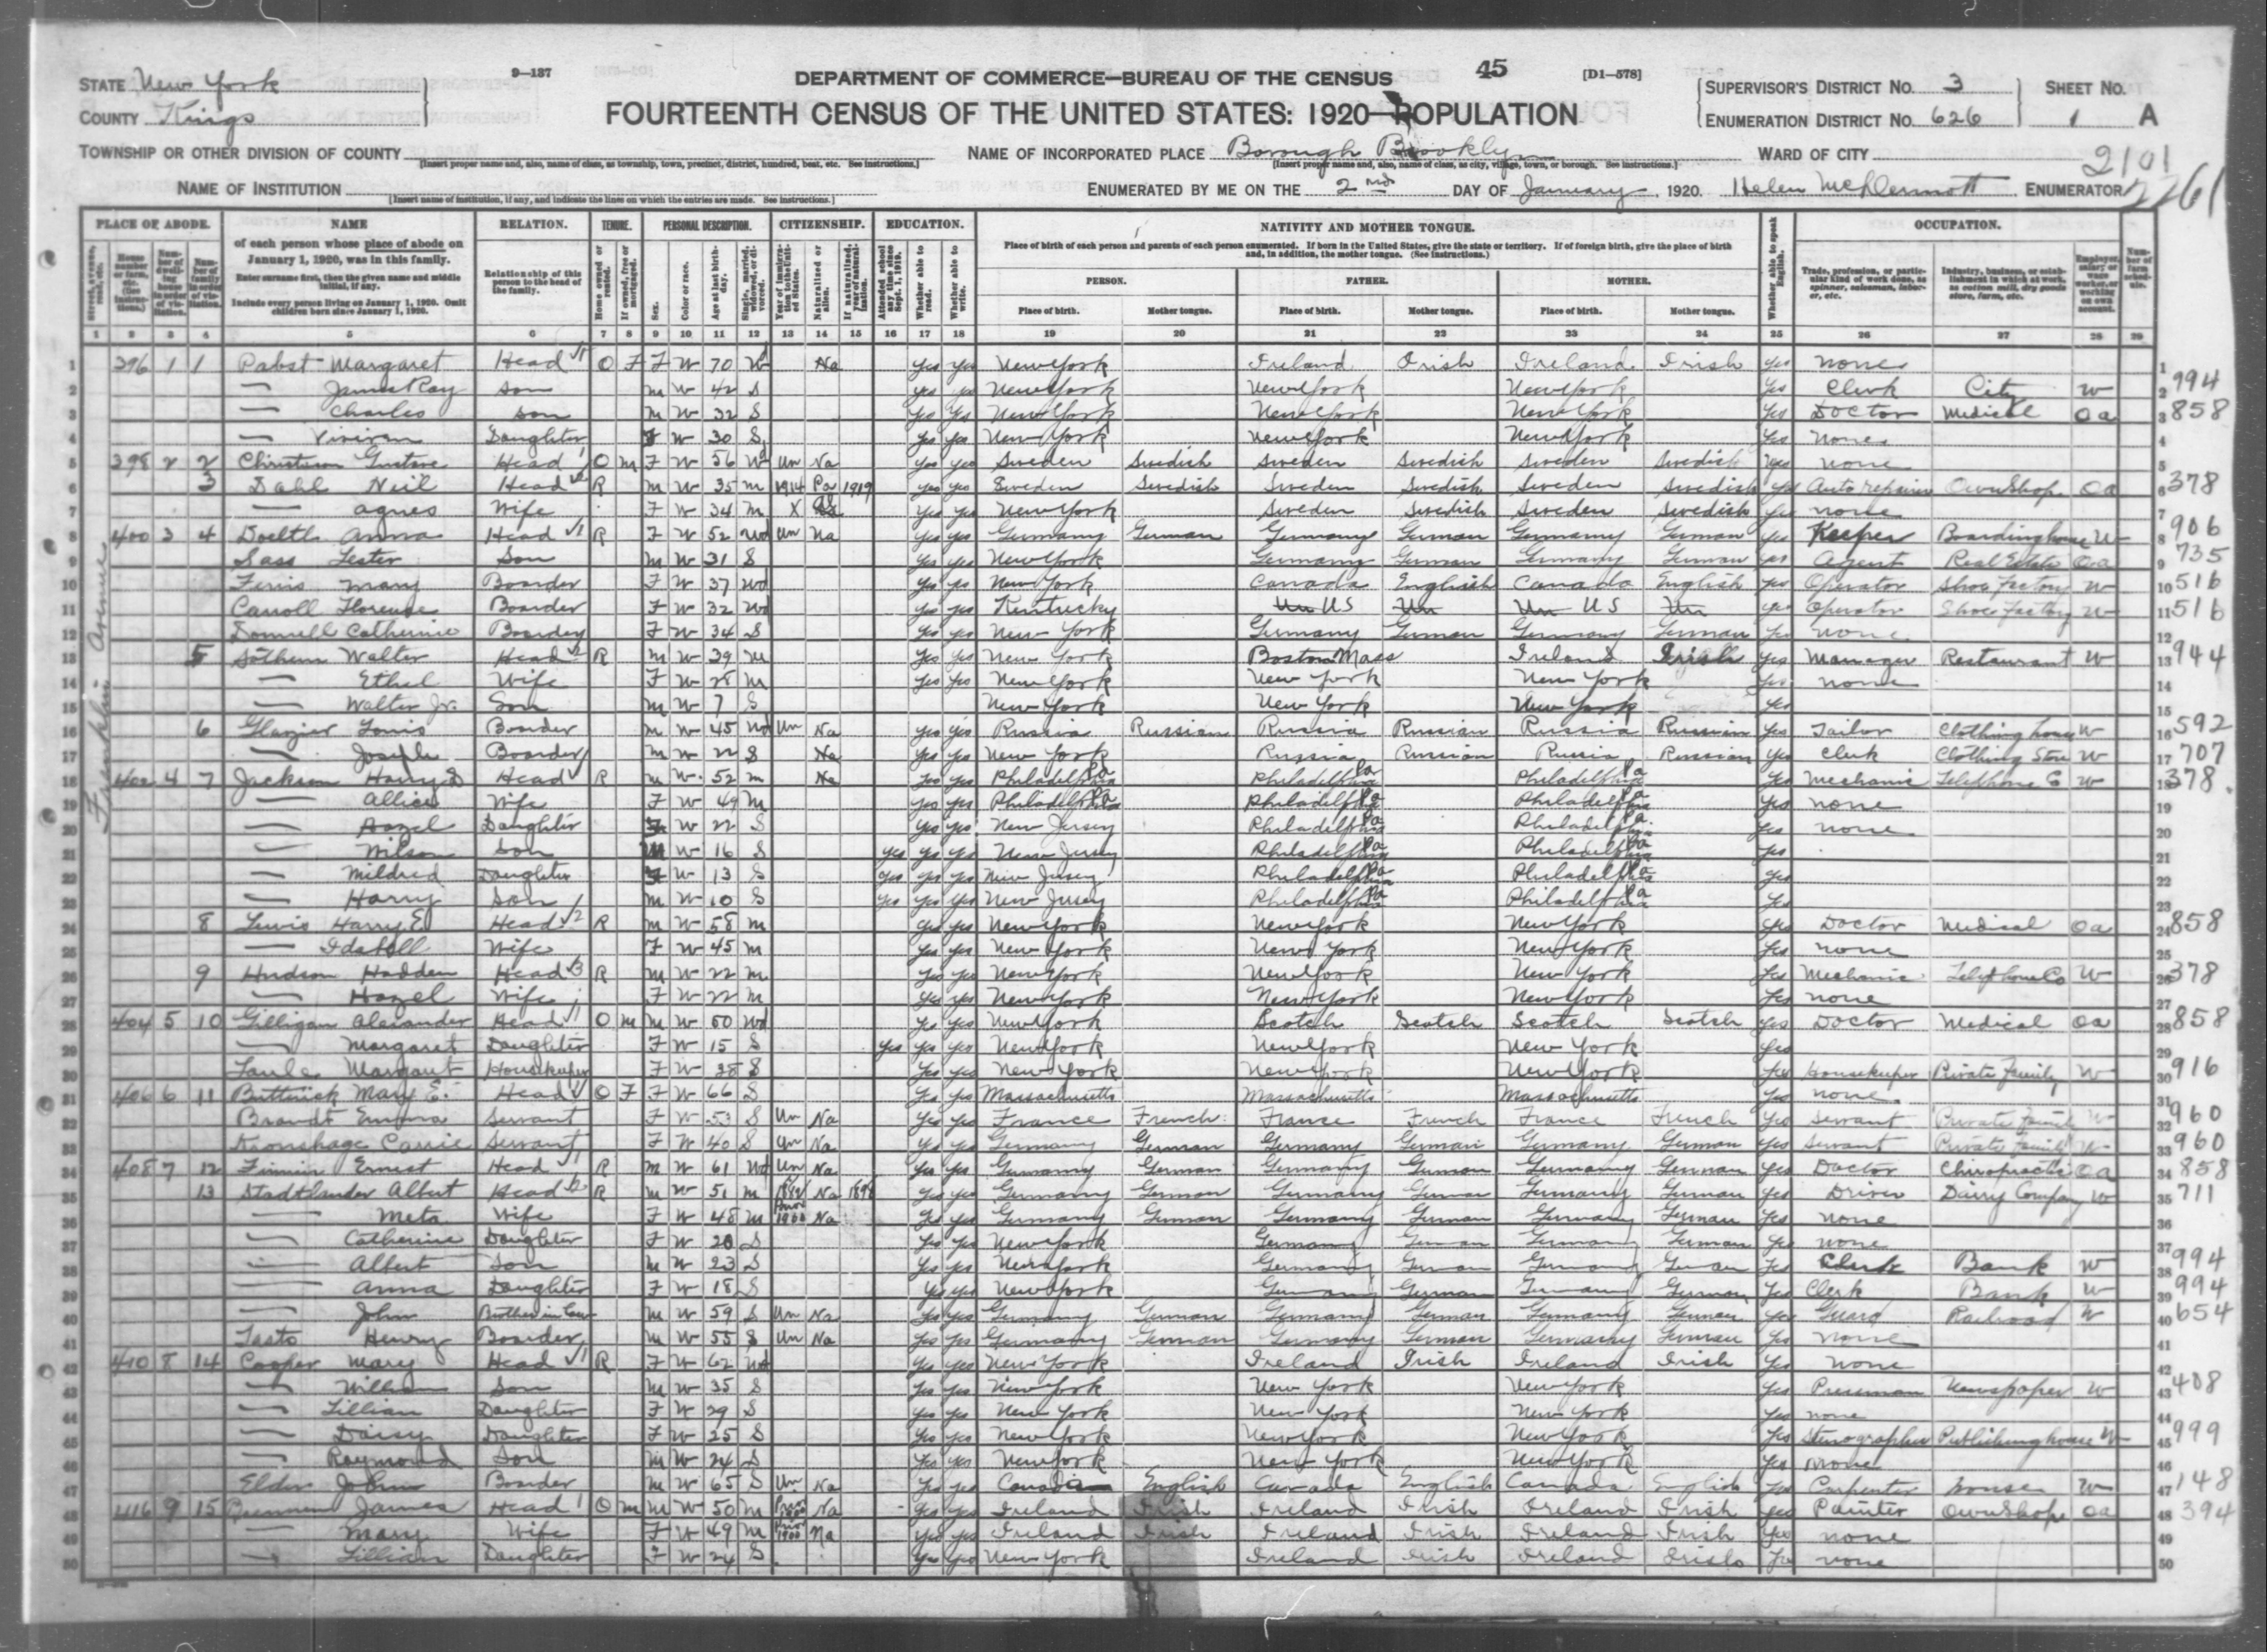 New York: KINGS County, Enumeration District 626, Sheet No. 1A